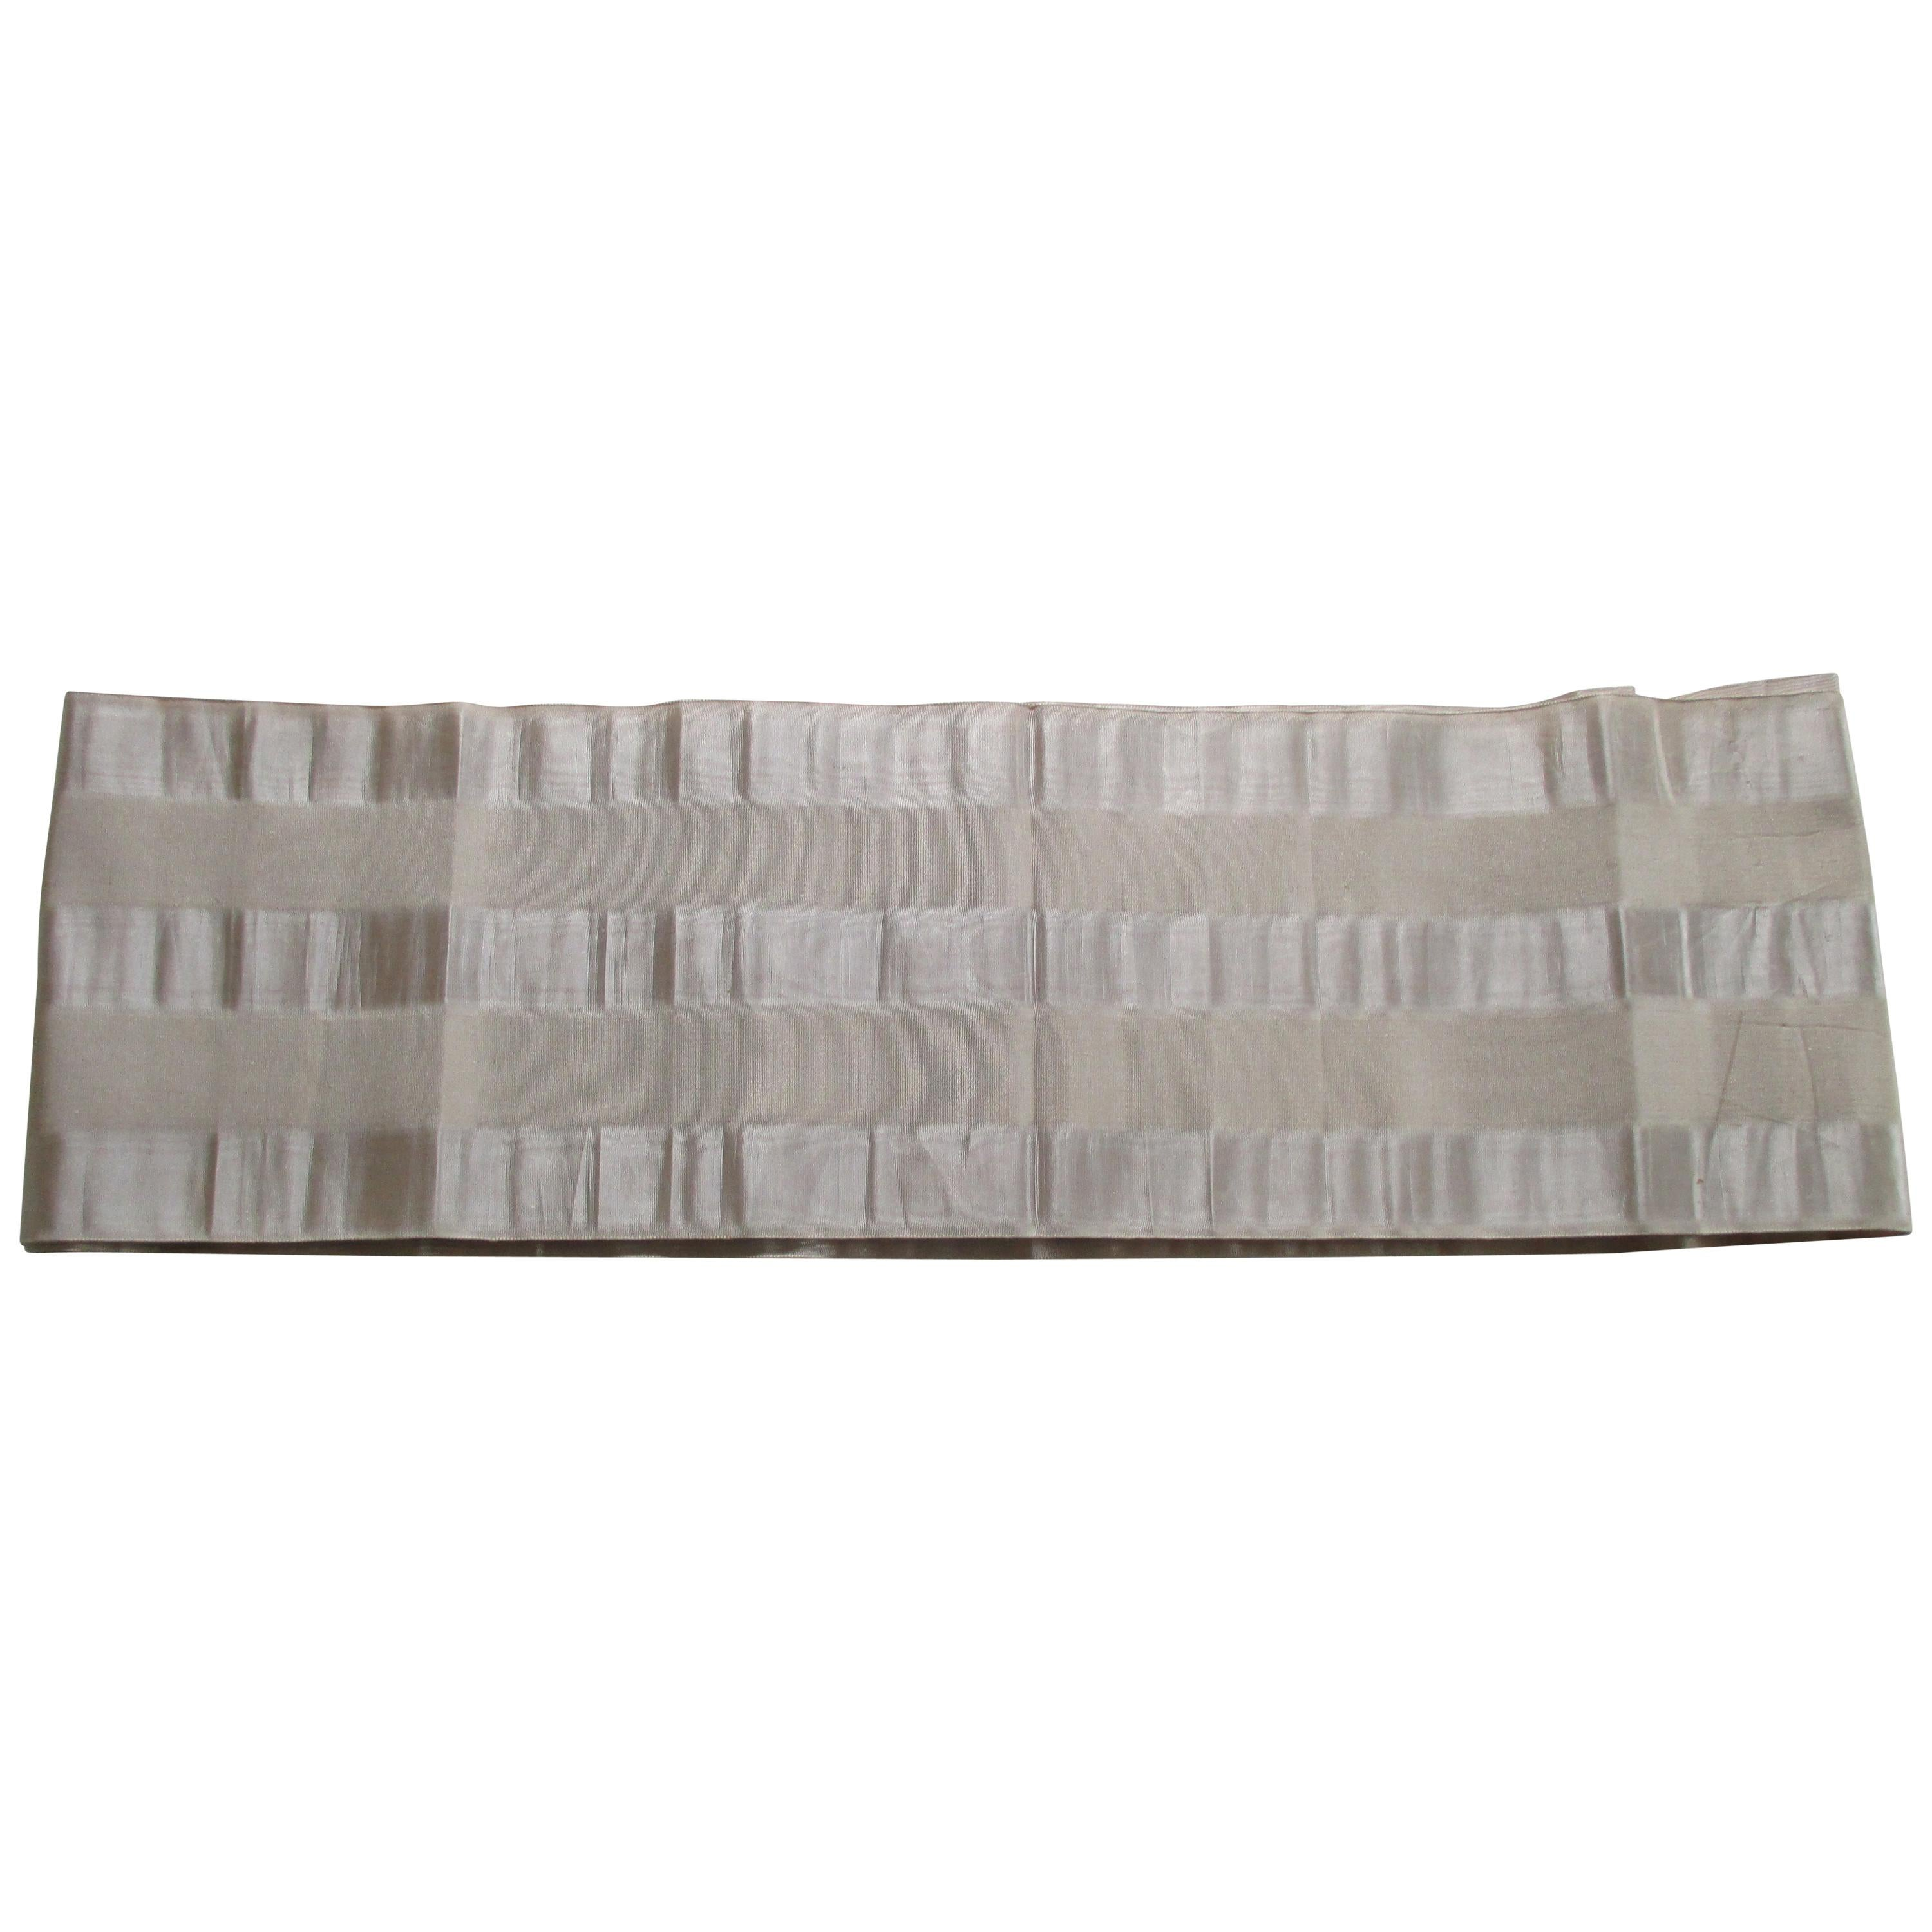 Vintage Obi Silk Textile with Silver Parallel Bands